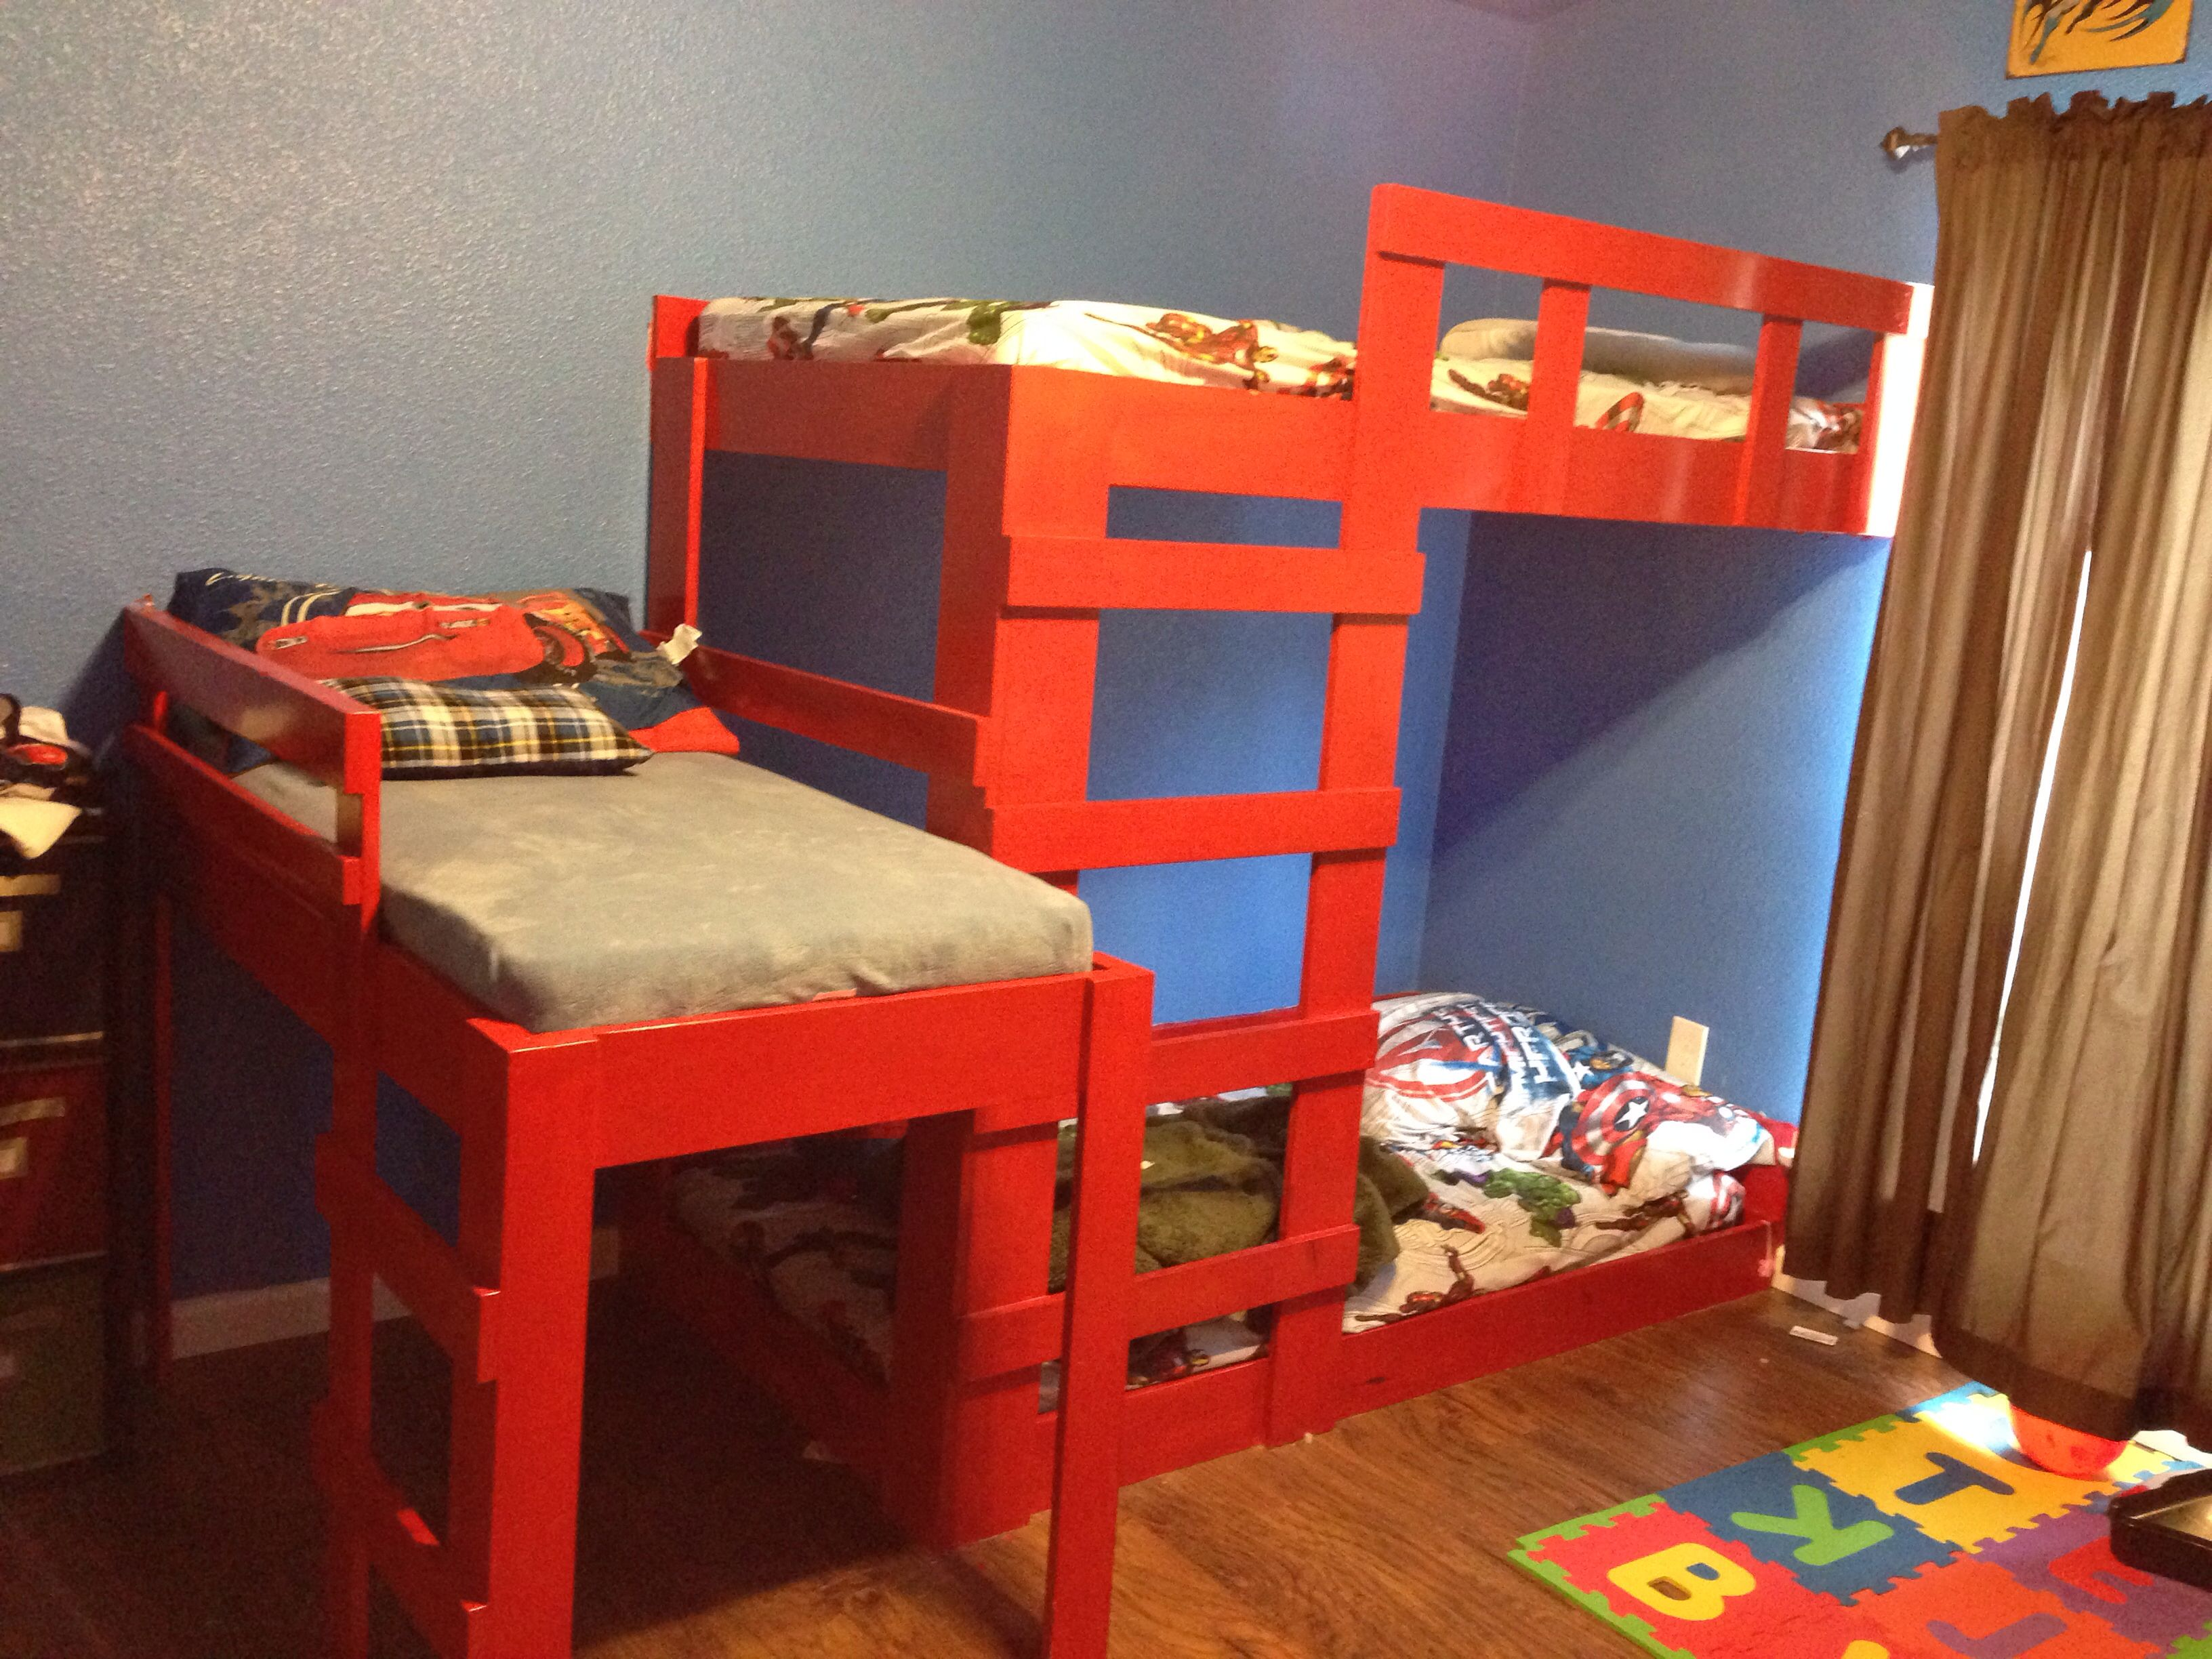 DIY Bunk Bed For 3 Boys Or 3 Girls Since We Aren't Sure